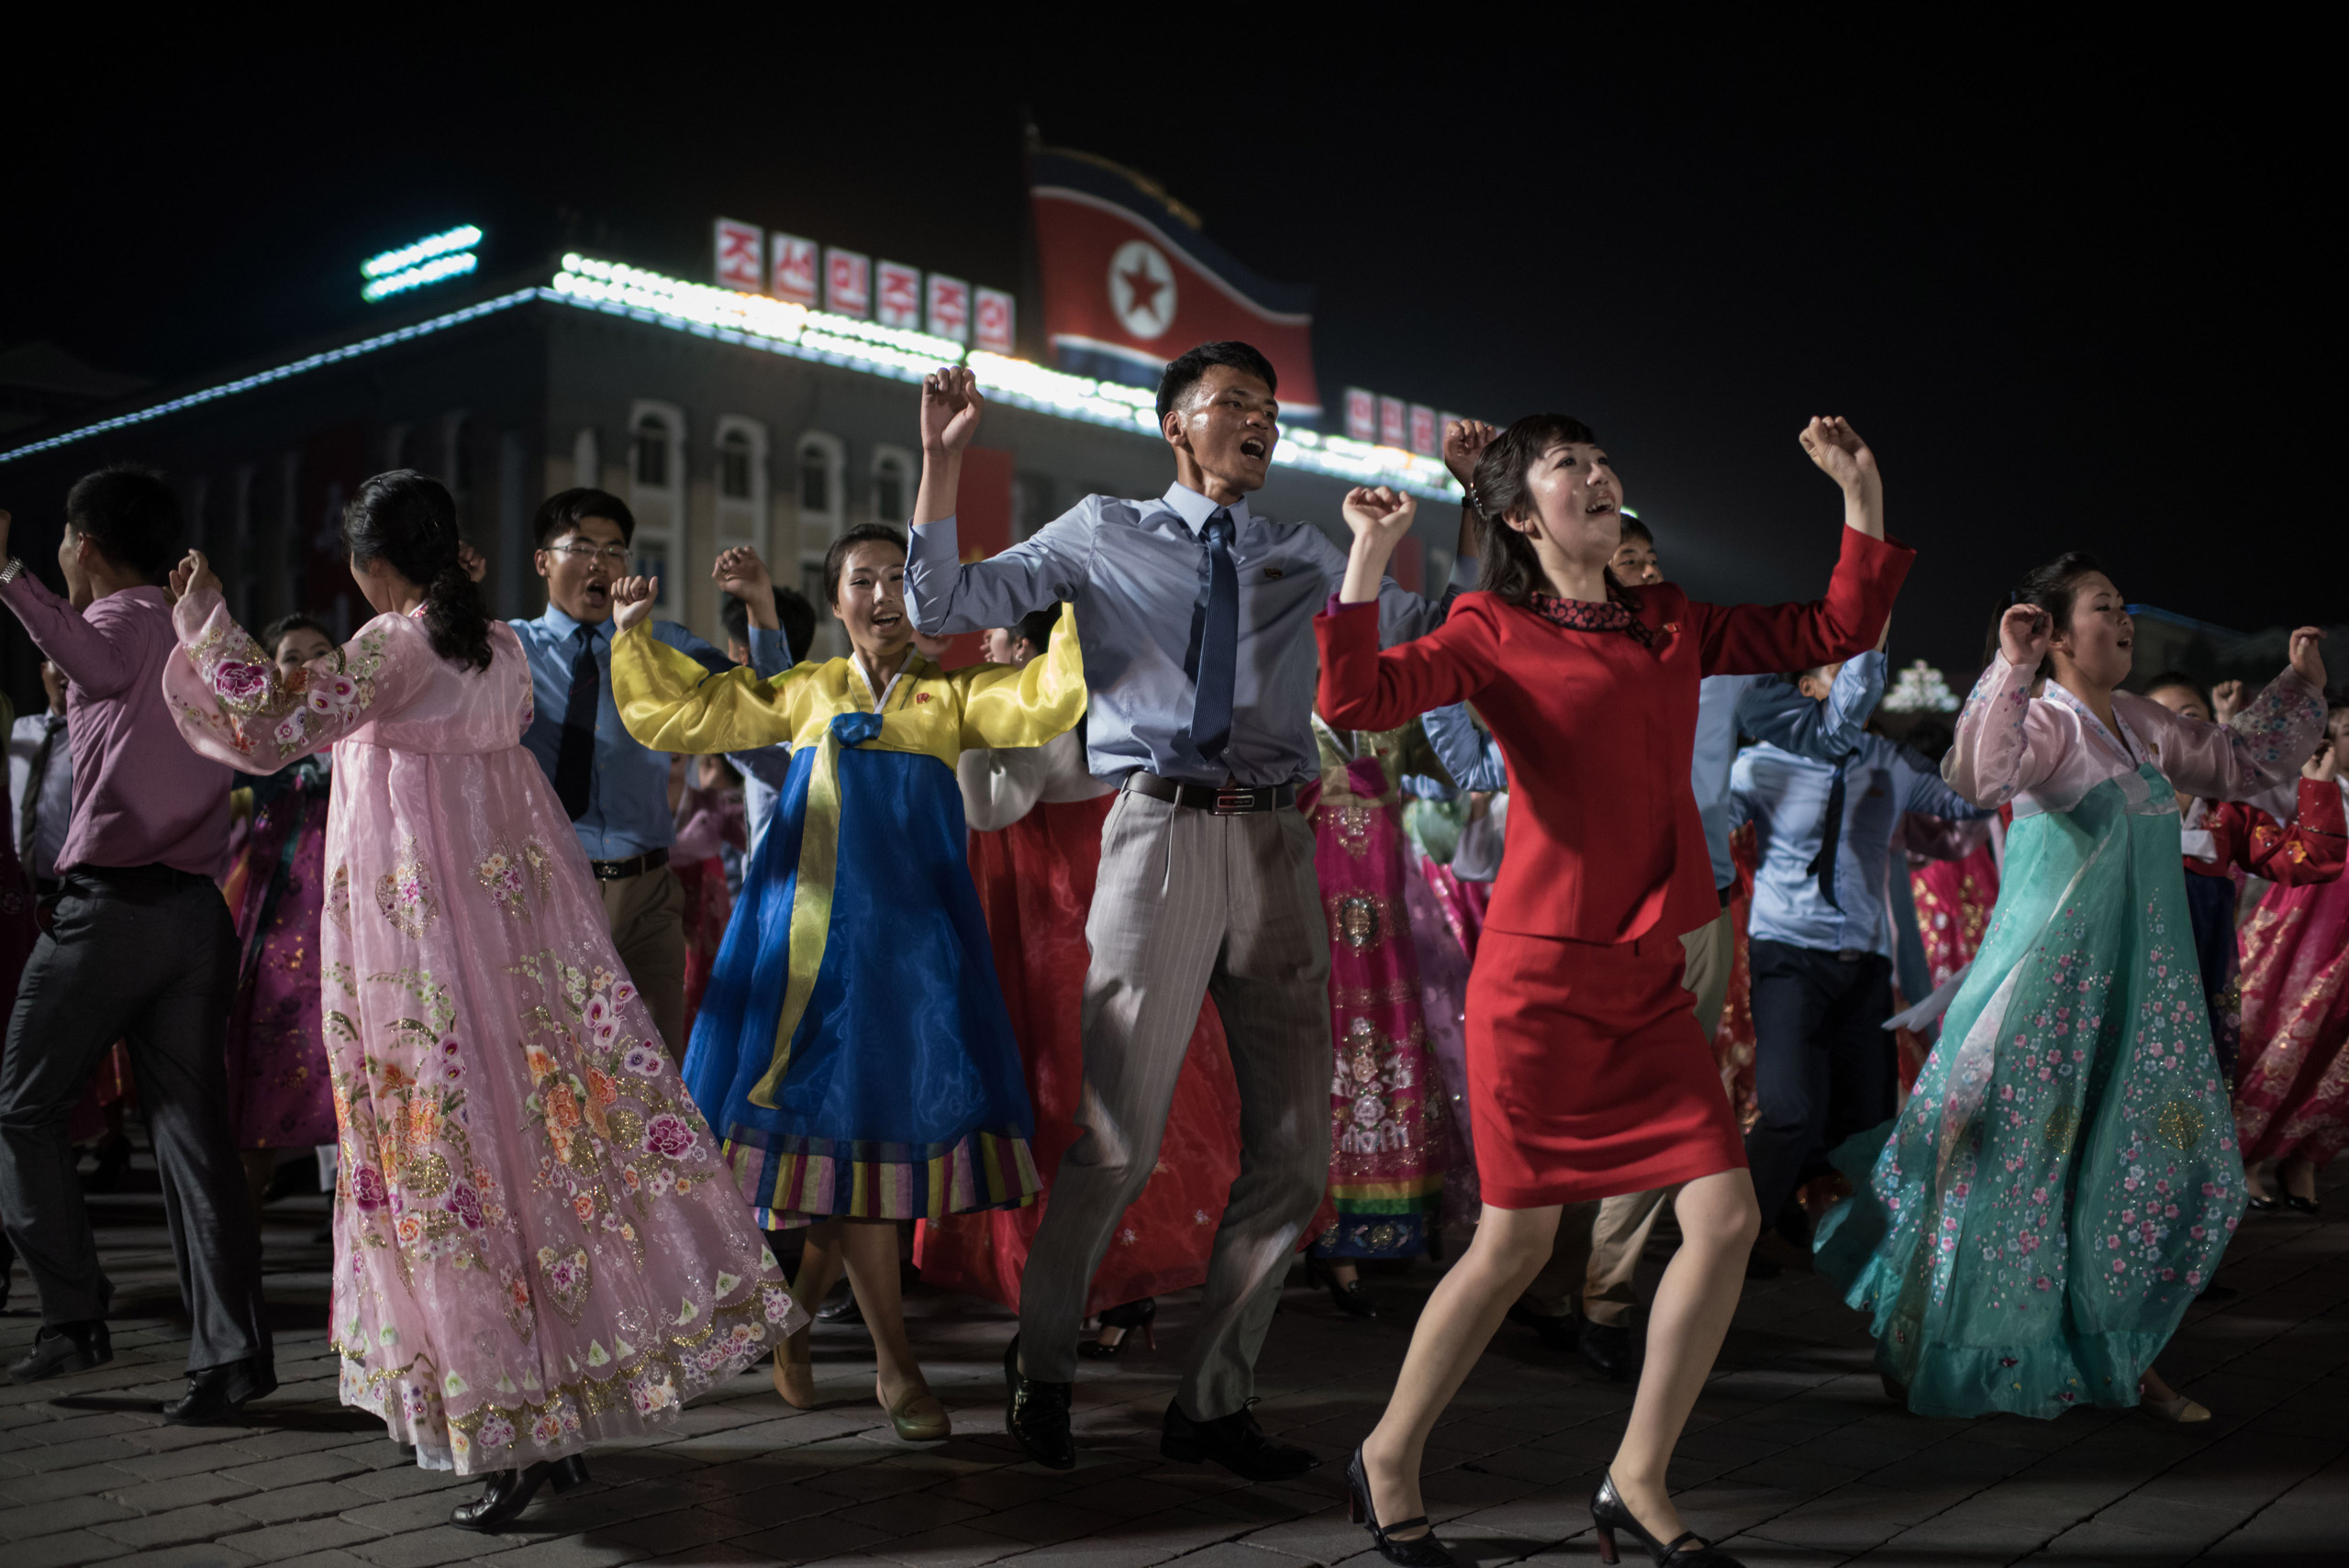 Participants perform in a mass dance event on Kim Il-Sung square marking the 105th anniversary of the birth of late North Korean leader Kim Il-Sung, in Pyongyang on April 15, 2017.